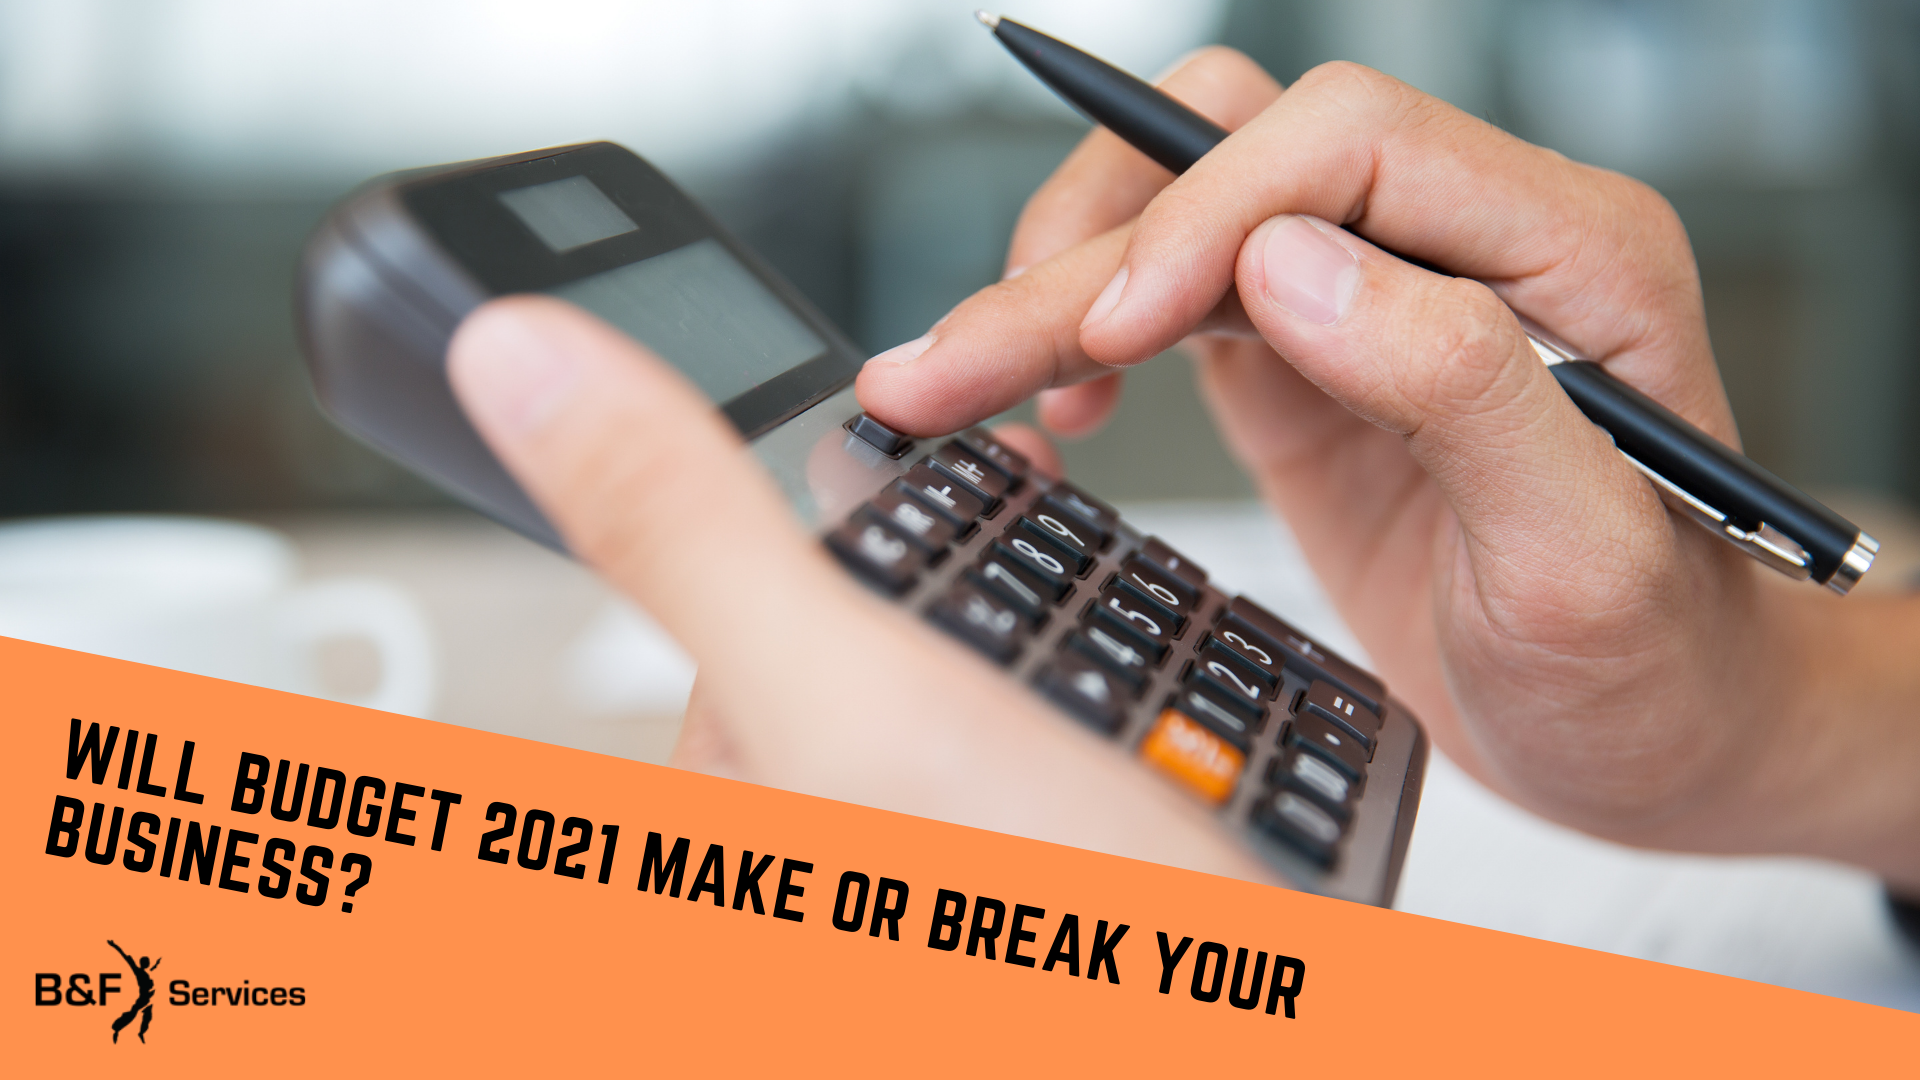 will-budget-2021-make-or-break-your-business?-